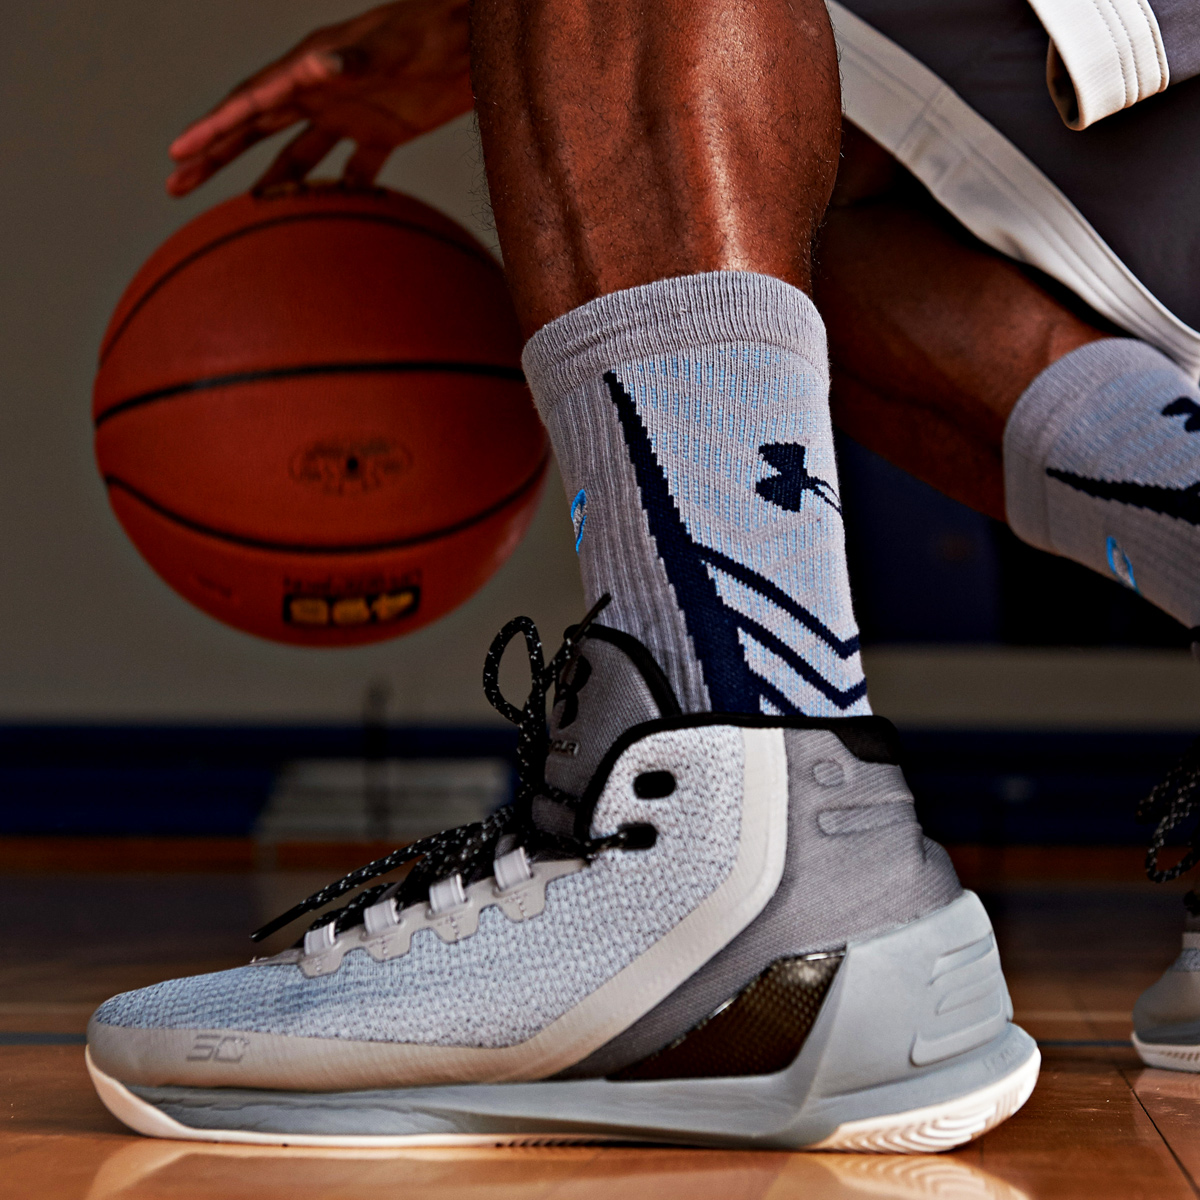 The Story Behind Each Curry 3 Colorway